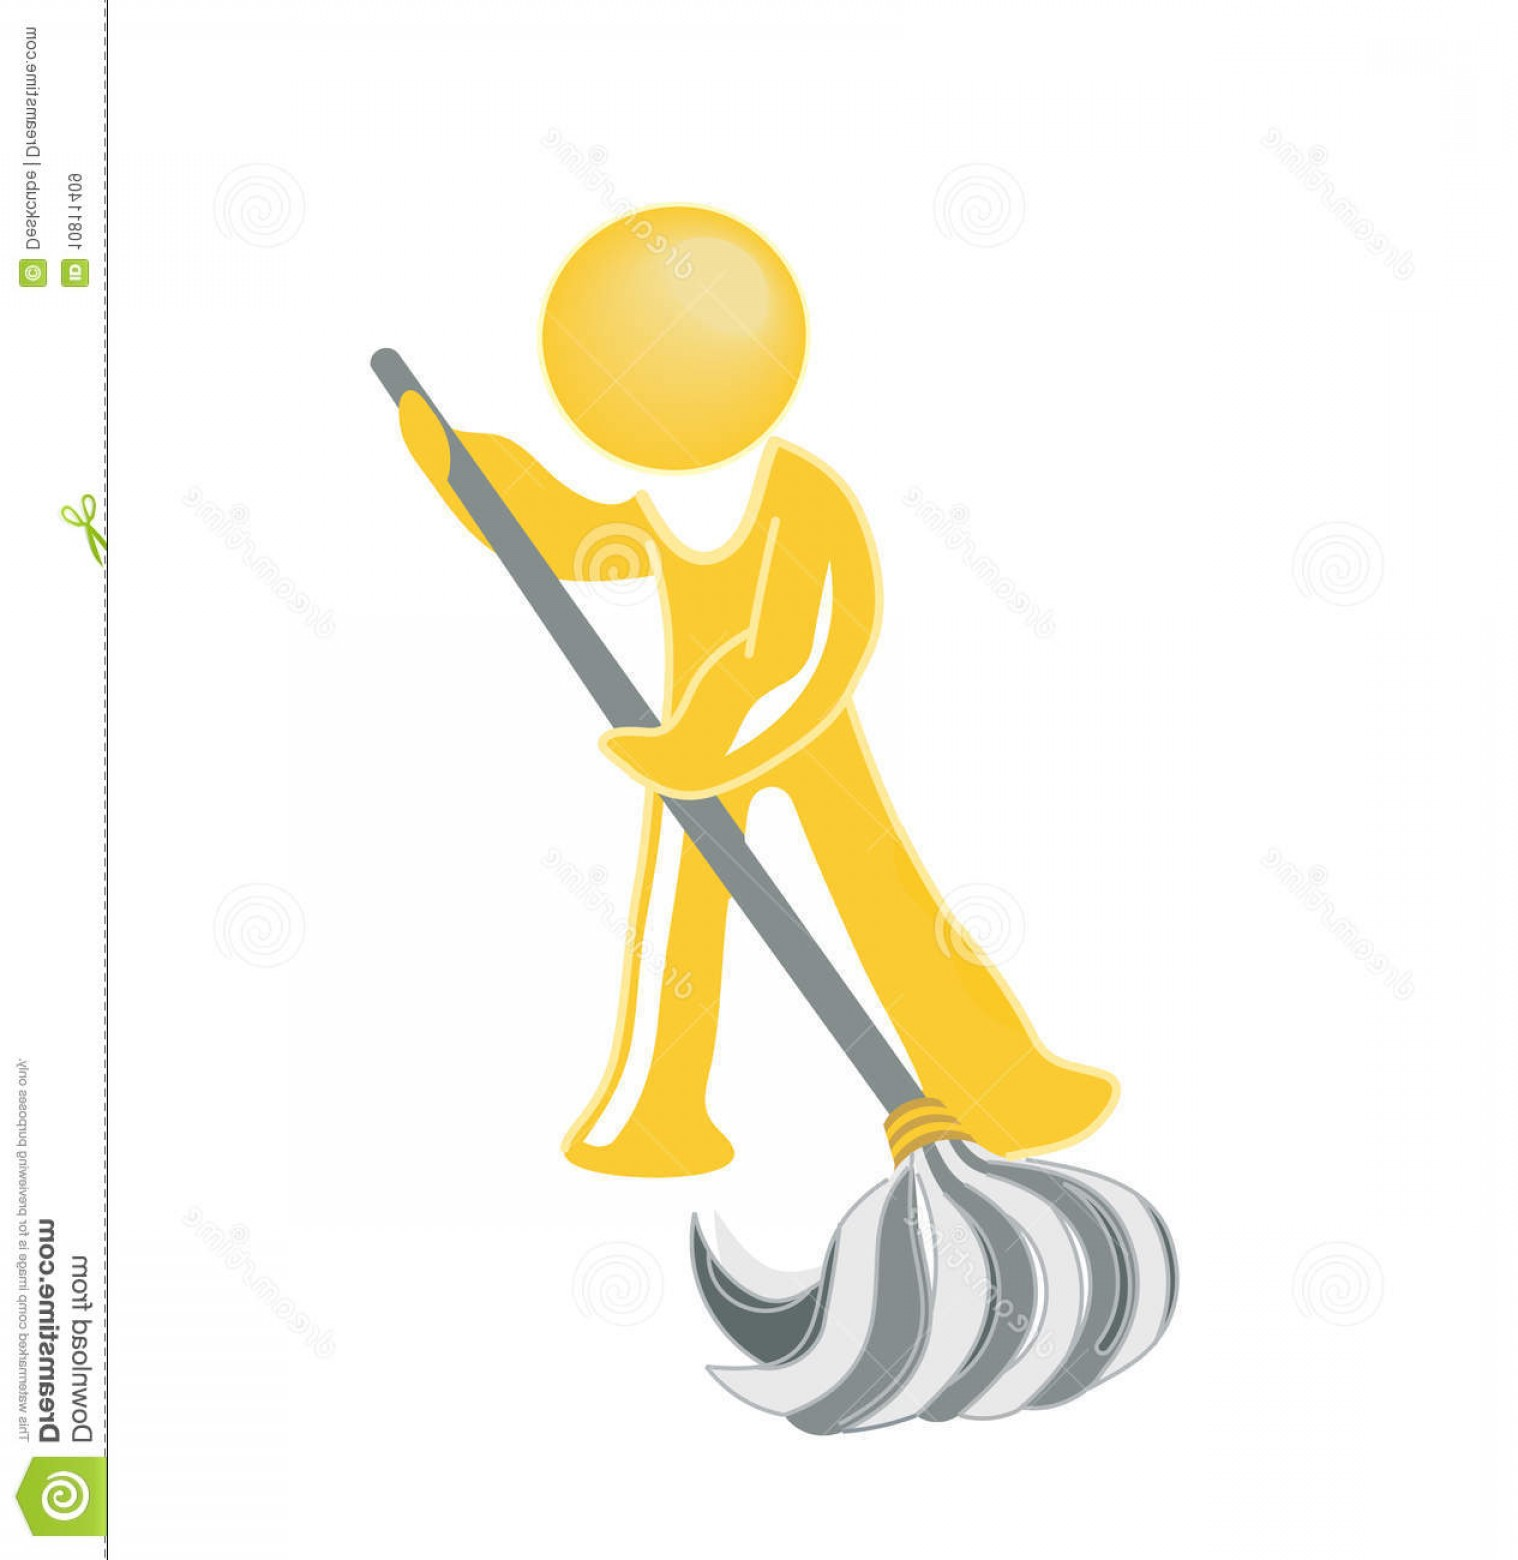 Janitorial Vector: Royalty Free Stock Images Janitor Icon Image